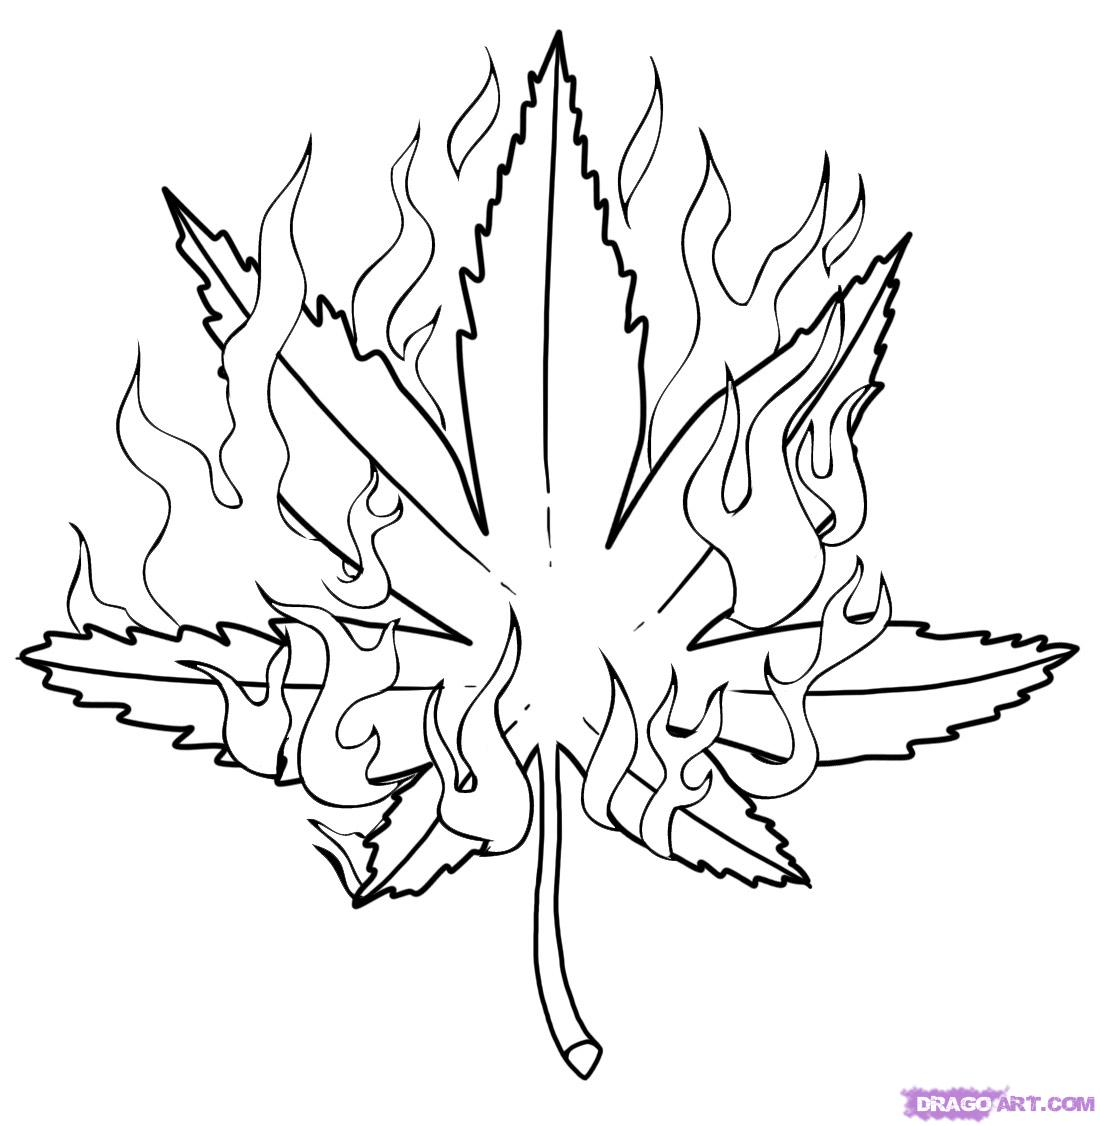 how-to-draw-a-pot-leaf-step-6.jpg